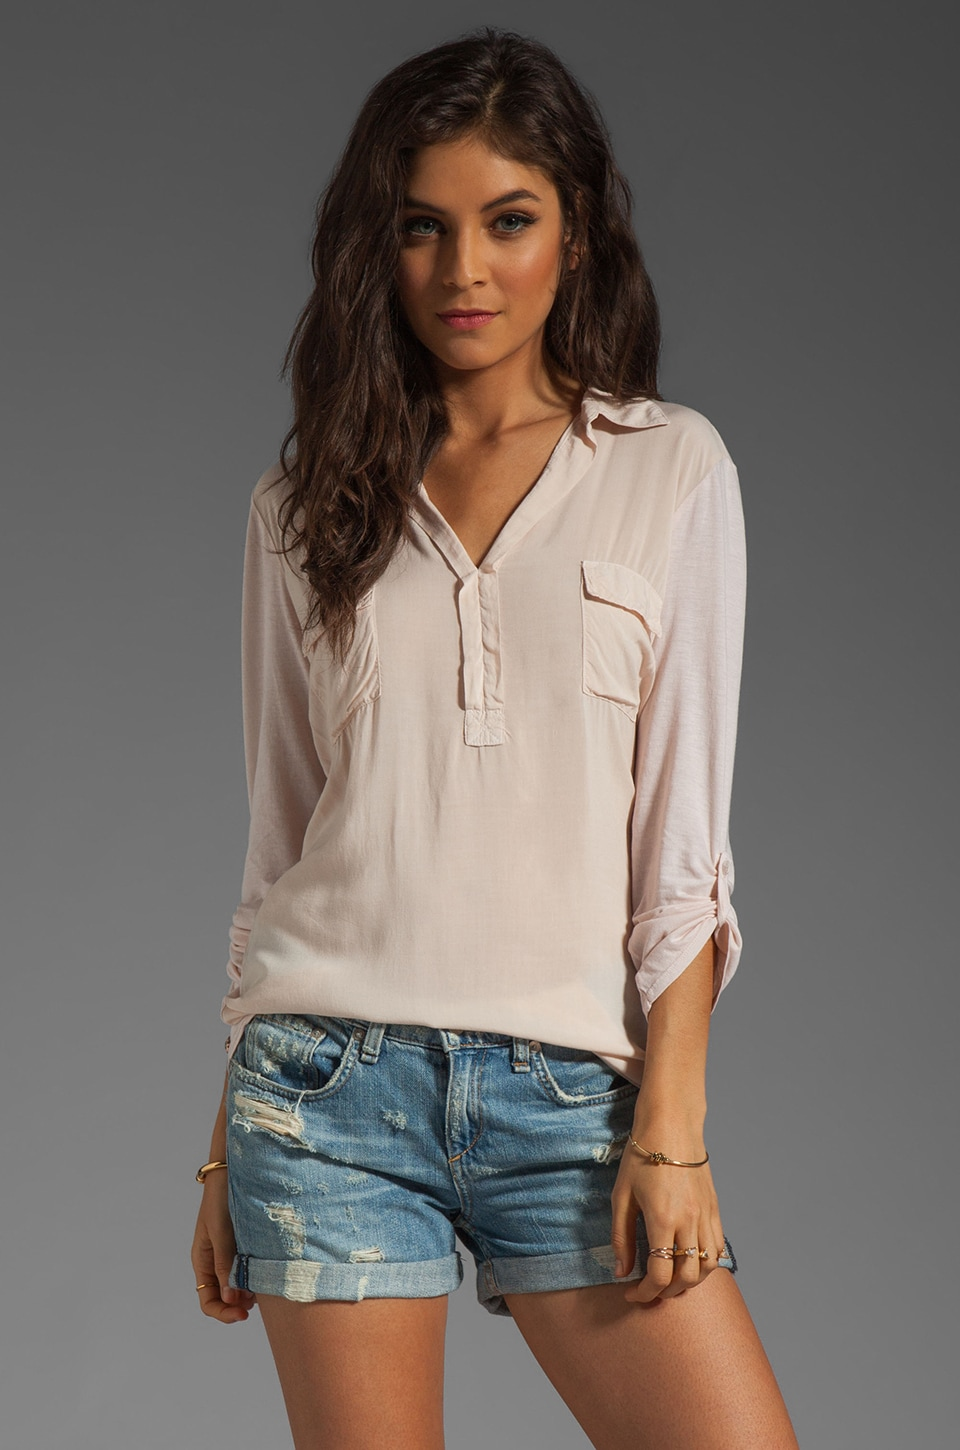 Splendid Shirting Collar Top in Sand